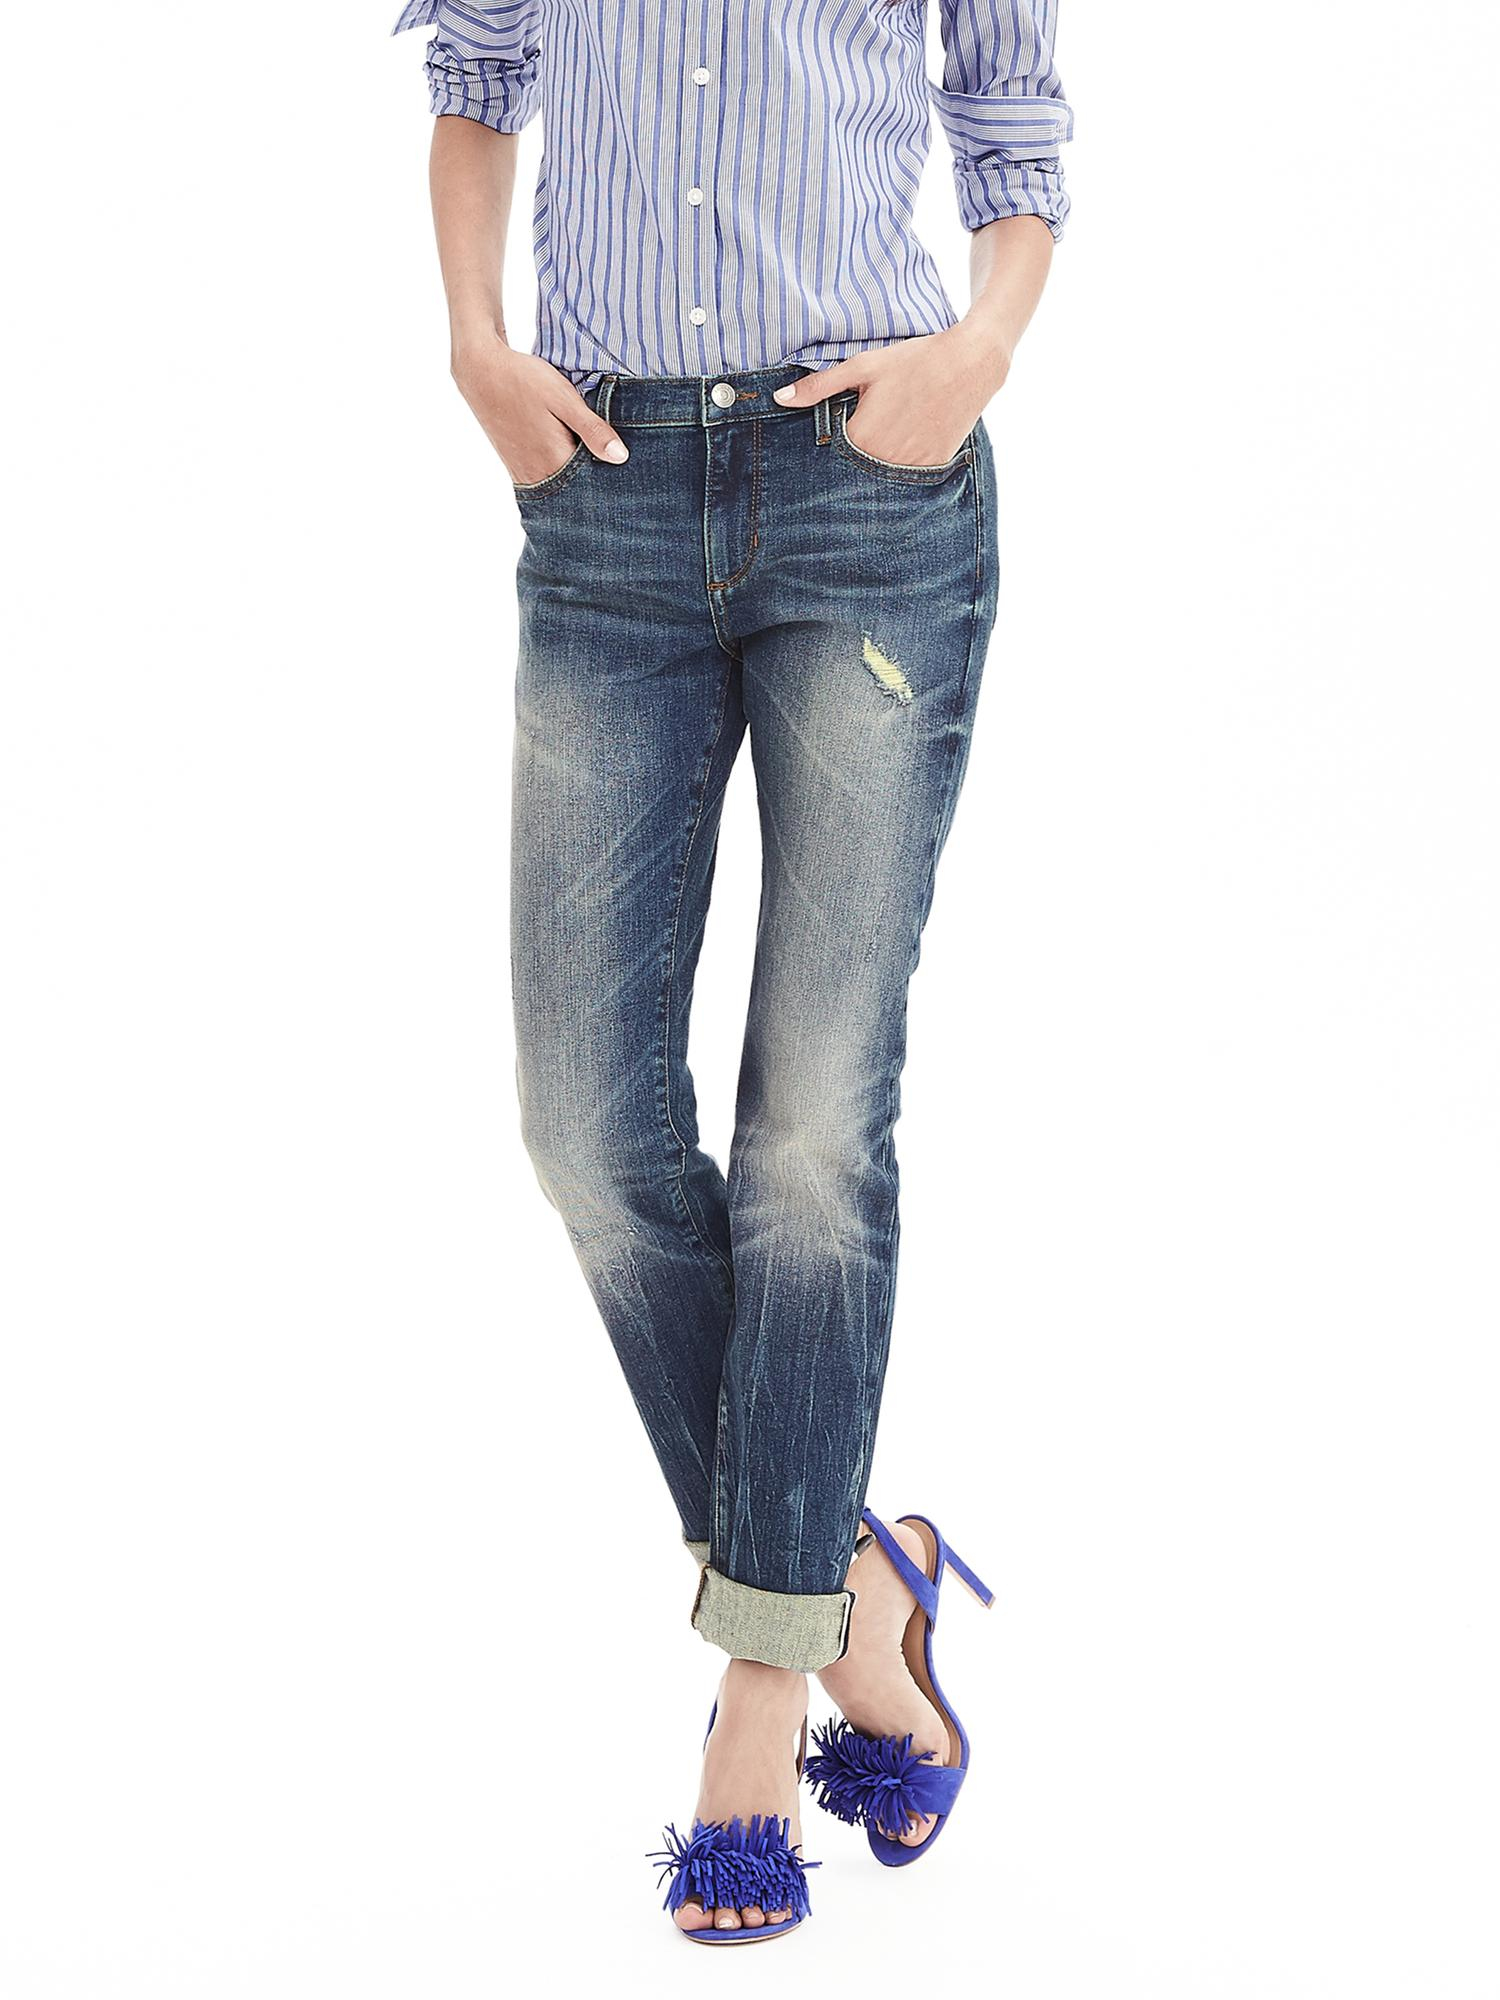 The line of tailored, casual, quality Banana Republic jeans and accessories for men and women represent a unique niche within the affordable boutique fashion market. In , founders Mel and Patricia Ziegler began a clothing company based on the casual durability and original styling of military surplus fashions.